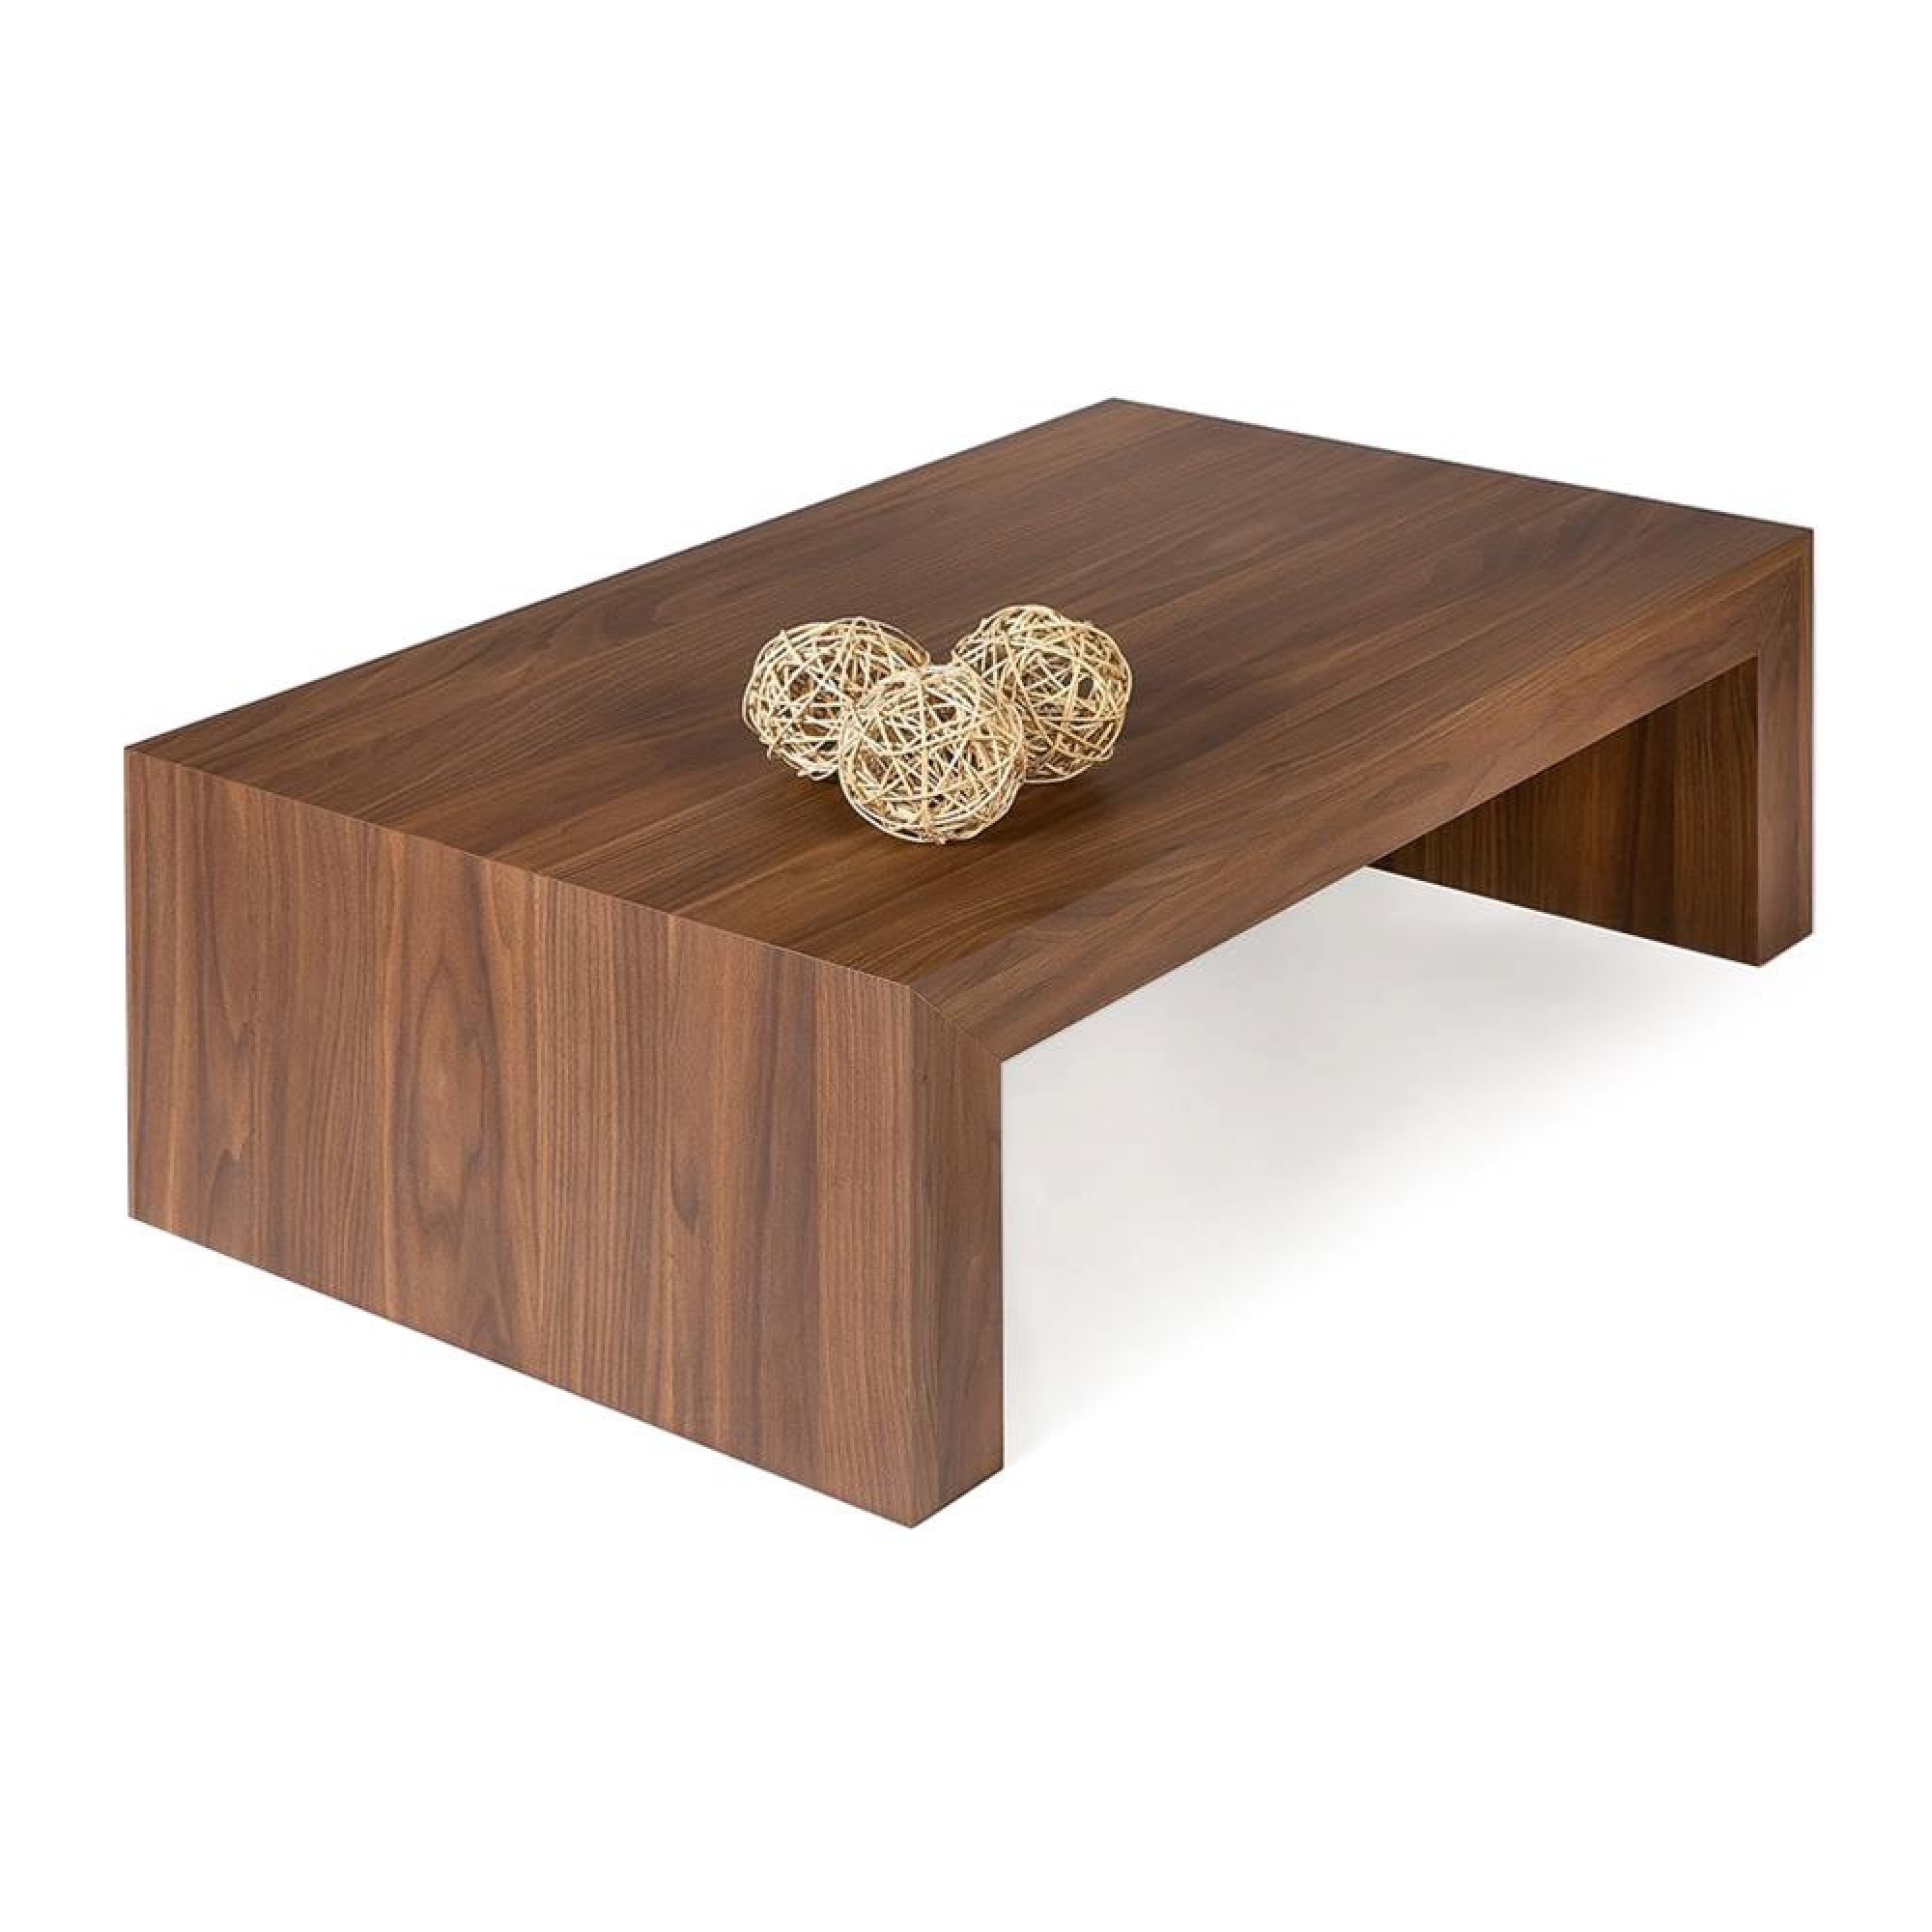 First Coffee table, Canaletto Walnut